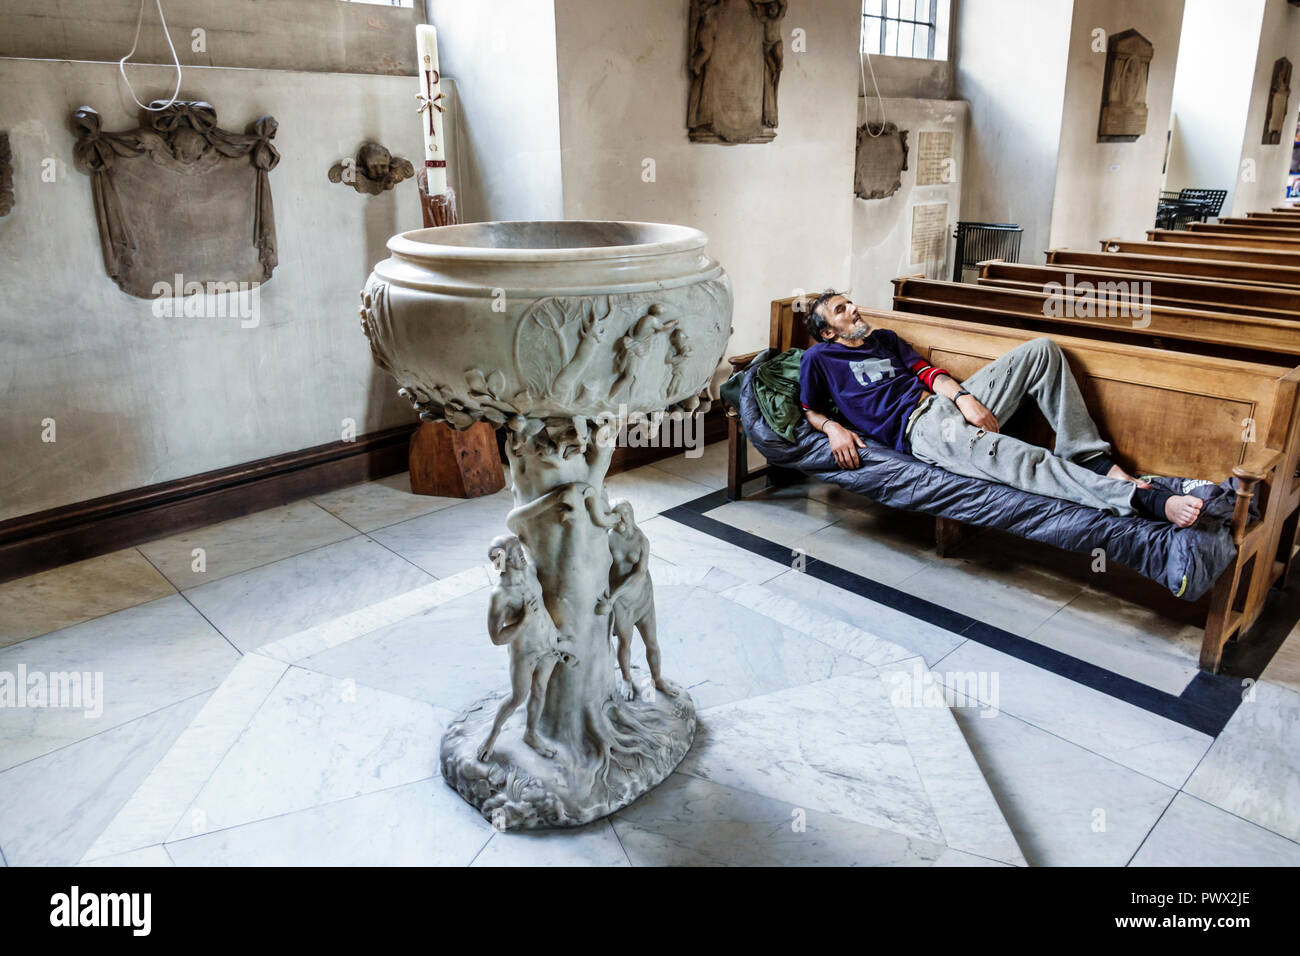 London England United Kingdom Great Britain West End St James's Piccadilly Church St James-in-the-Fields Anglican Church parish interior pews homeless Stock Photo